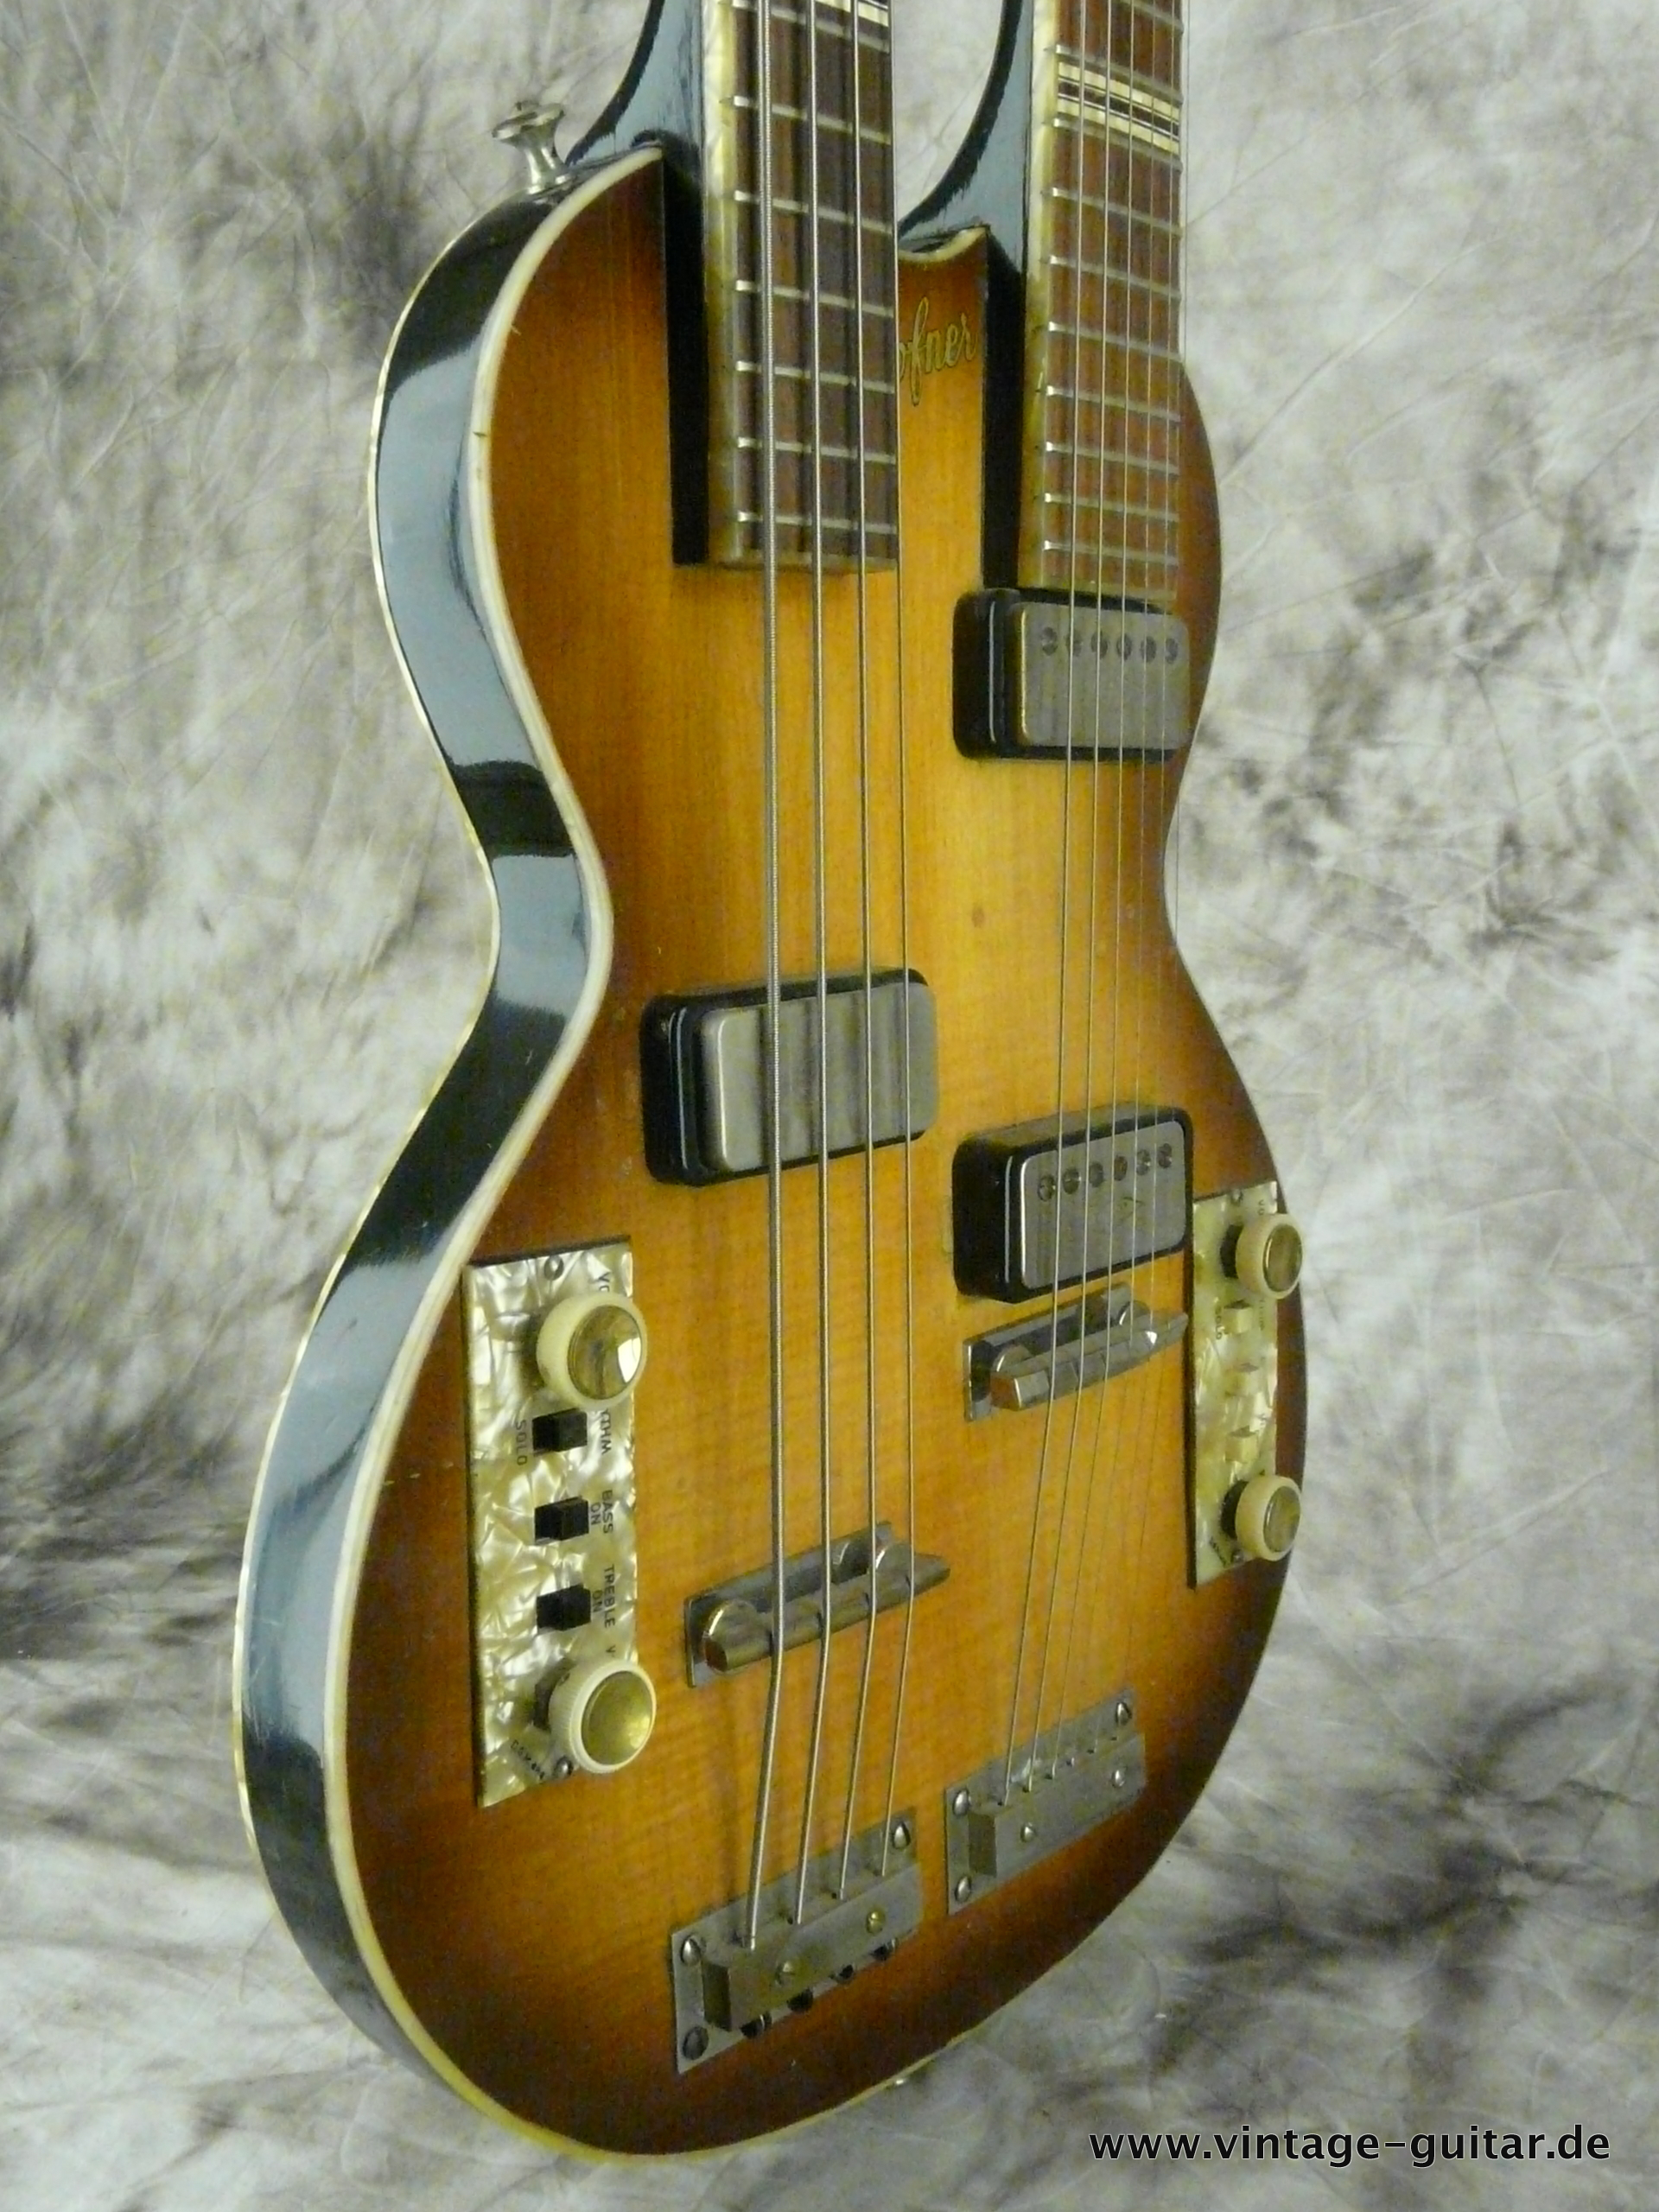 img/vintage/2648/Hofner-Double-Neck-Guitar-and-Bass-Model-191-011.JPG